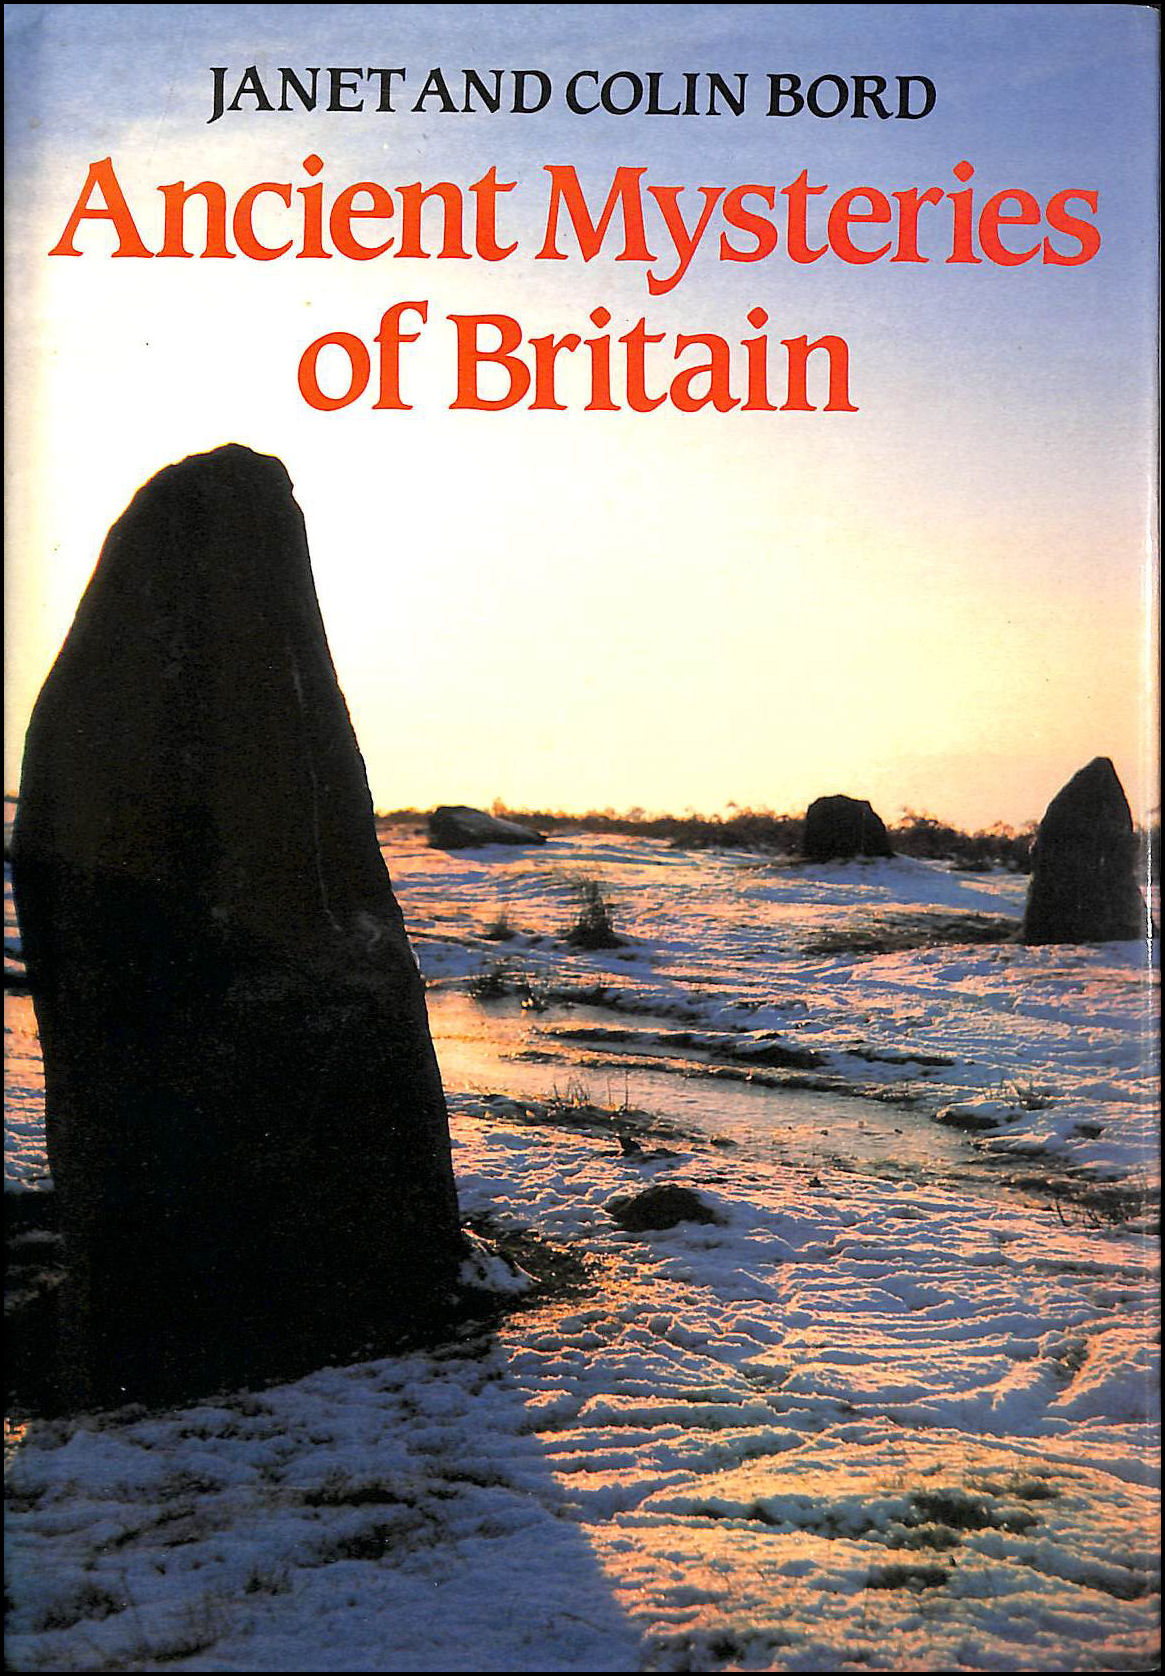 Ancient Mysteries of Britain,, Janet and Colin Bord.